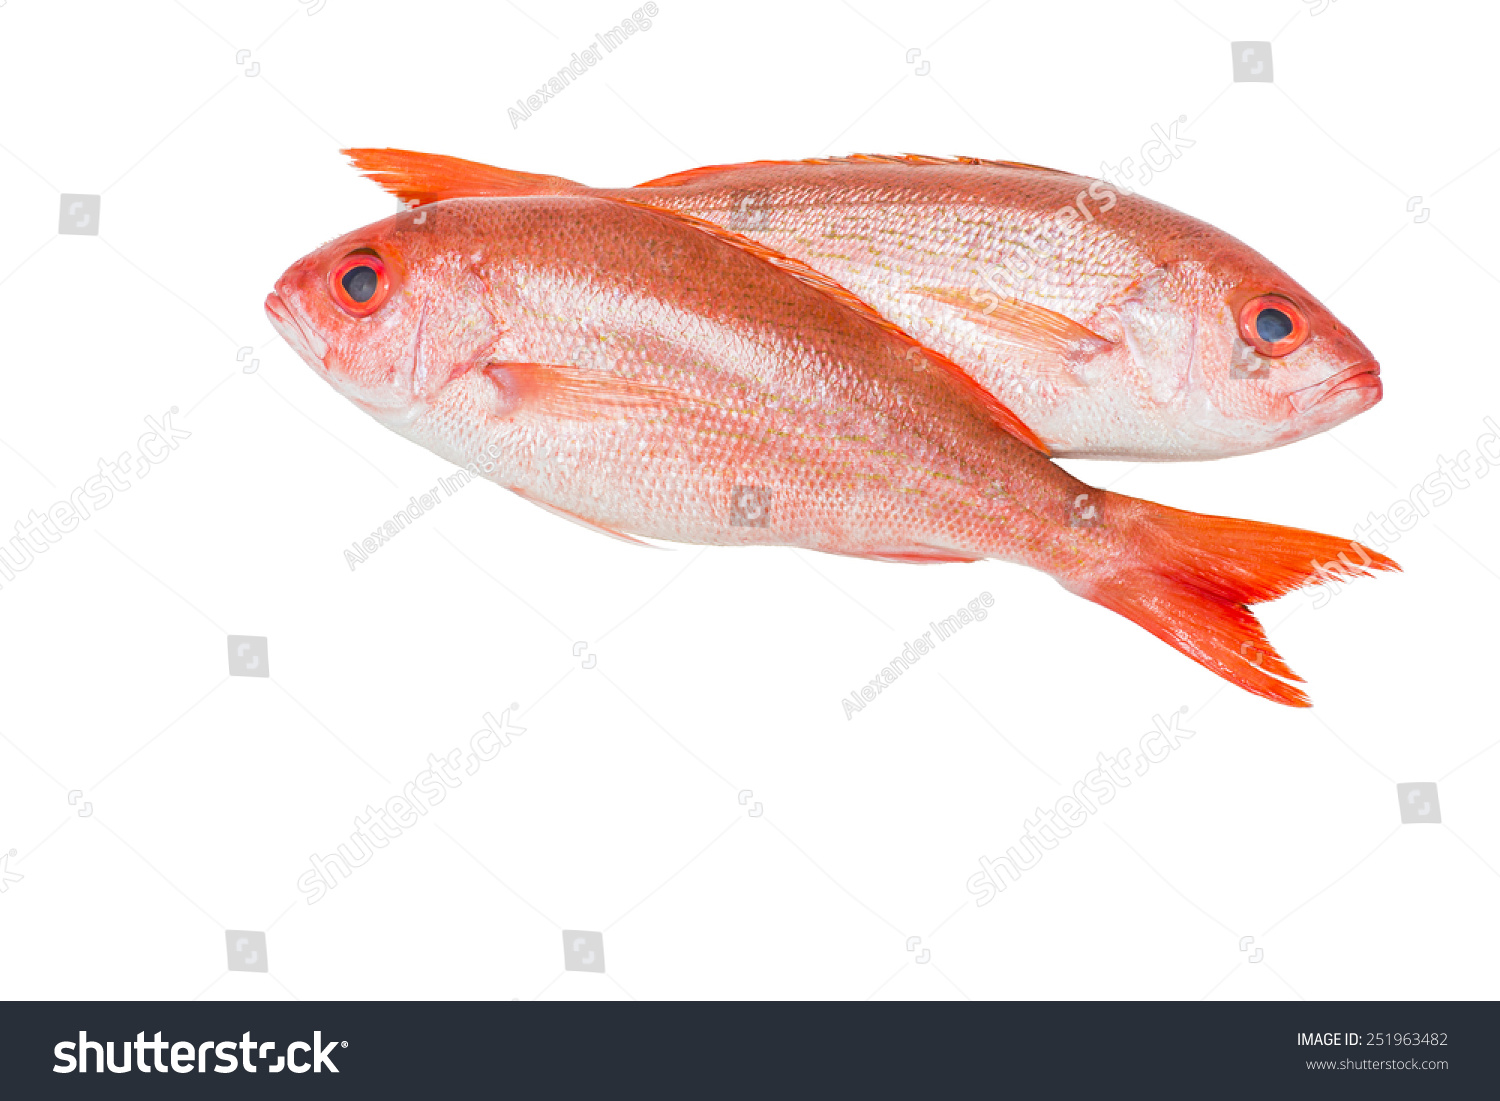 Red snapper limits in florida download pdf for Types of red fish